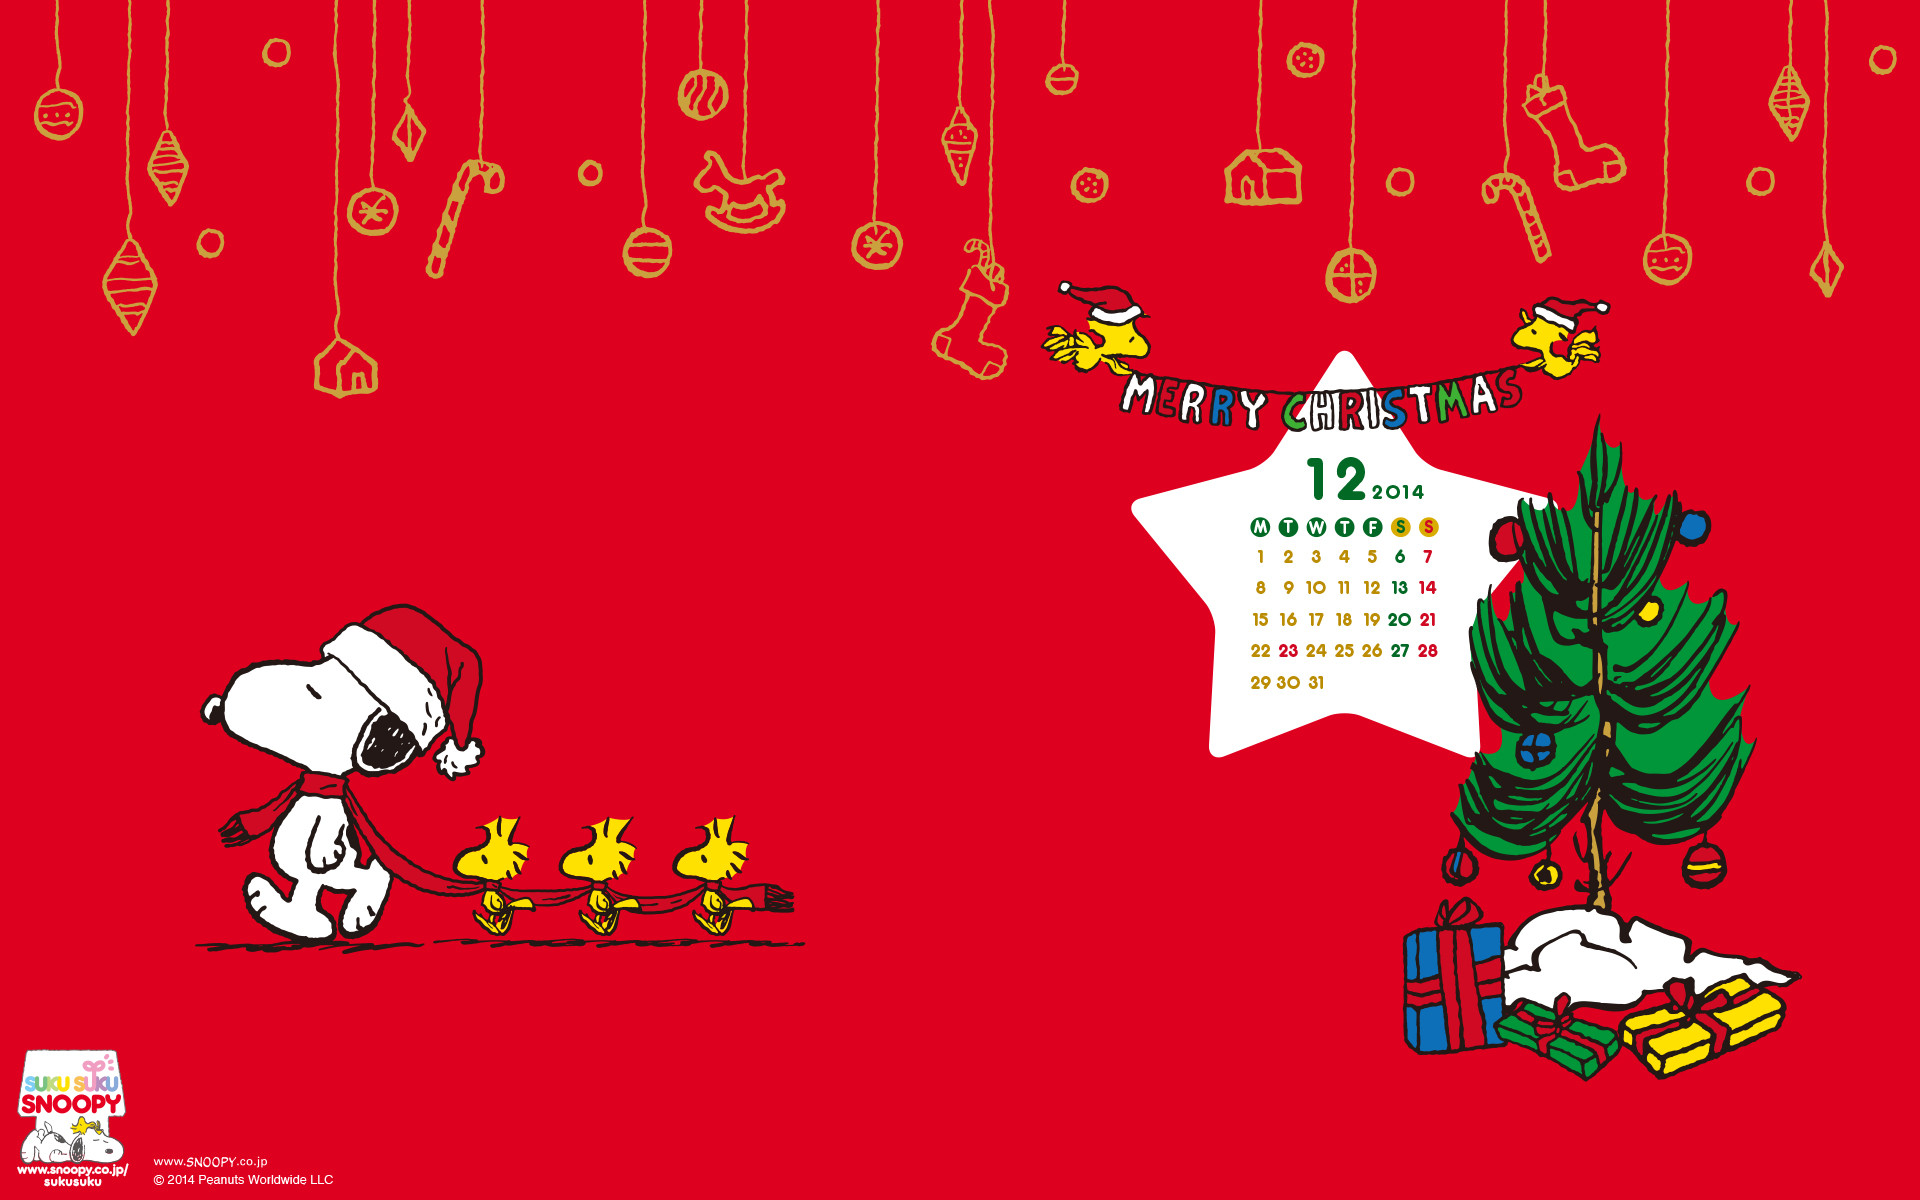 118 1183017 12 2014 data src free download snoopy christmas